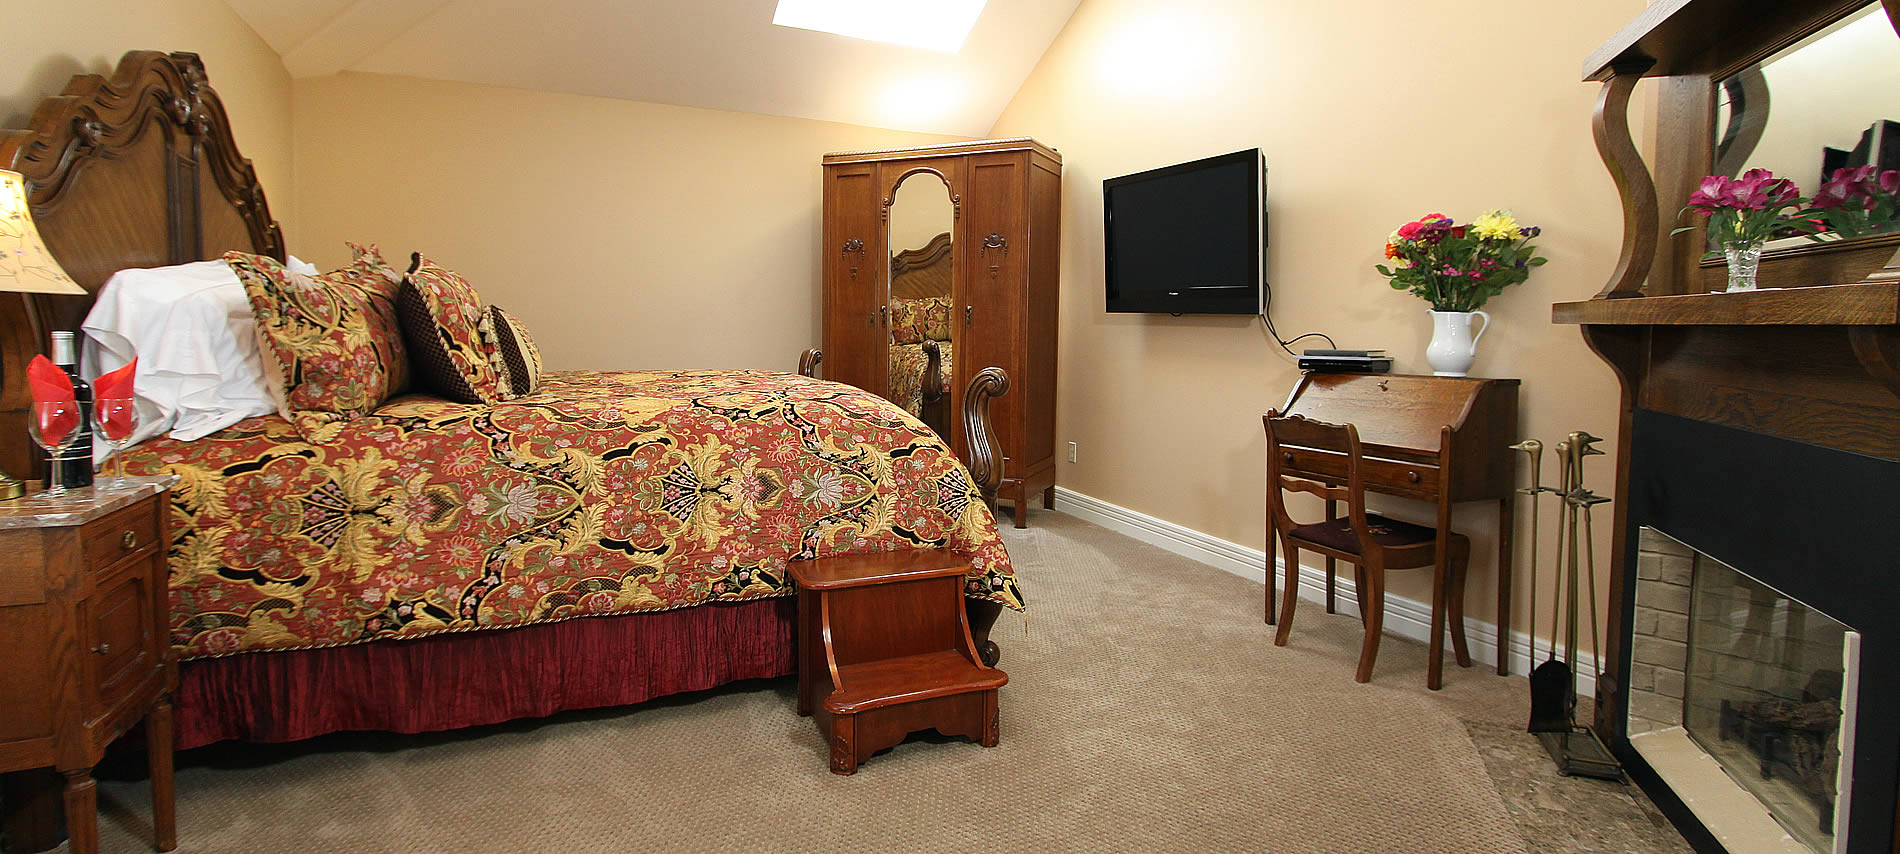 sage creek suite napa bed and breakfast lodging